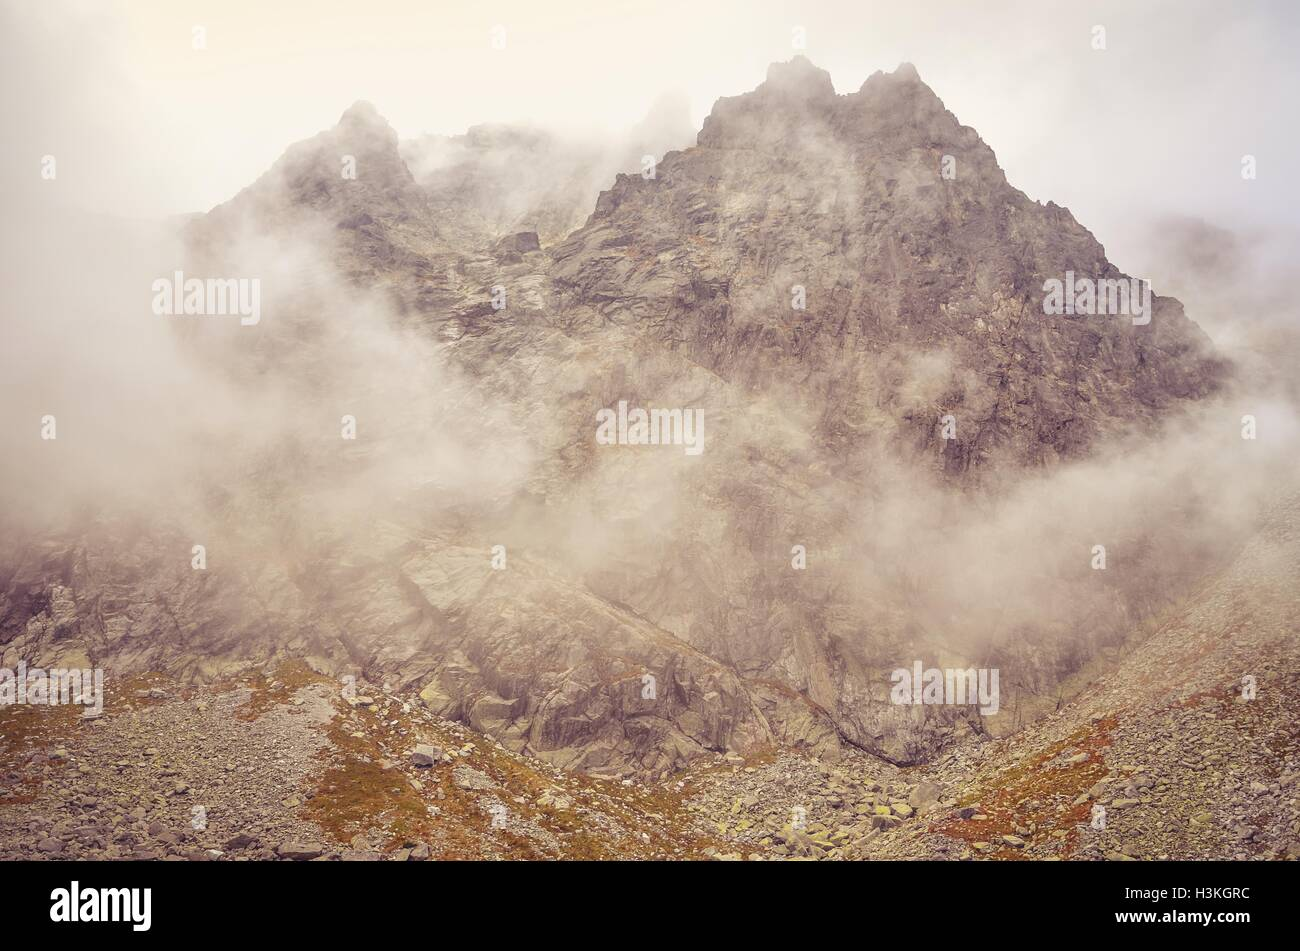 Cloudy mountain landscape. Rocky peaks in the clouds in High Tatra, Slovakia. - Stock Image